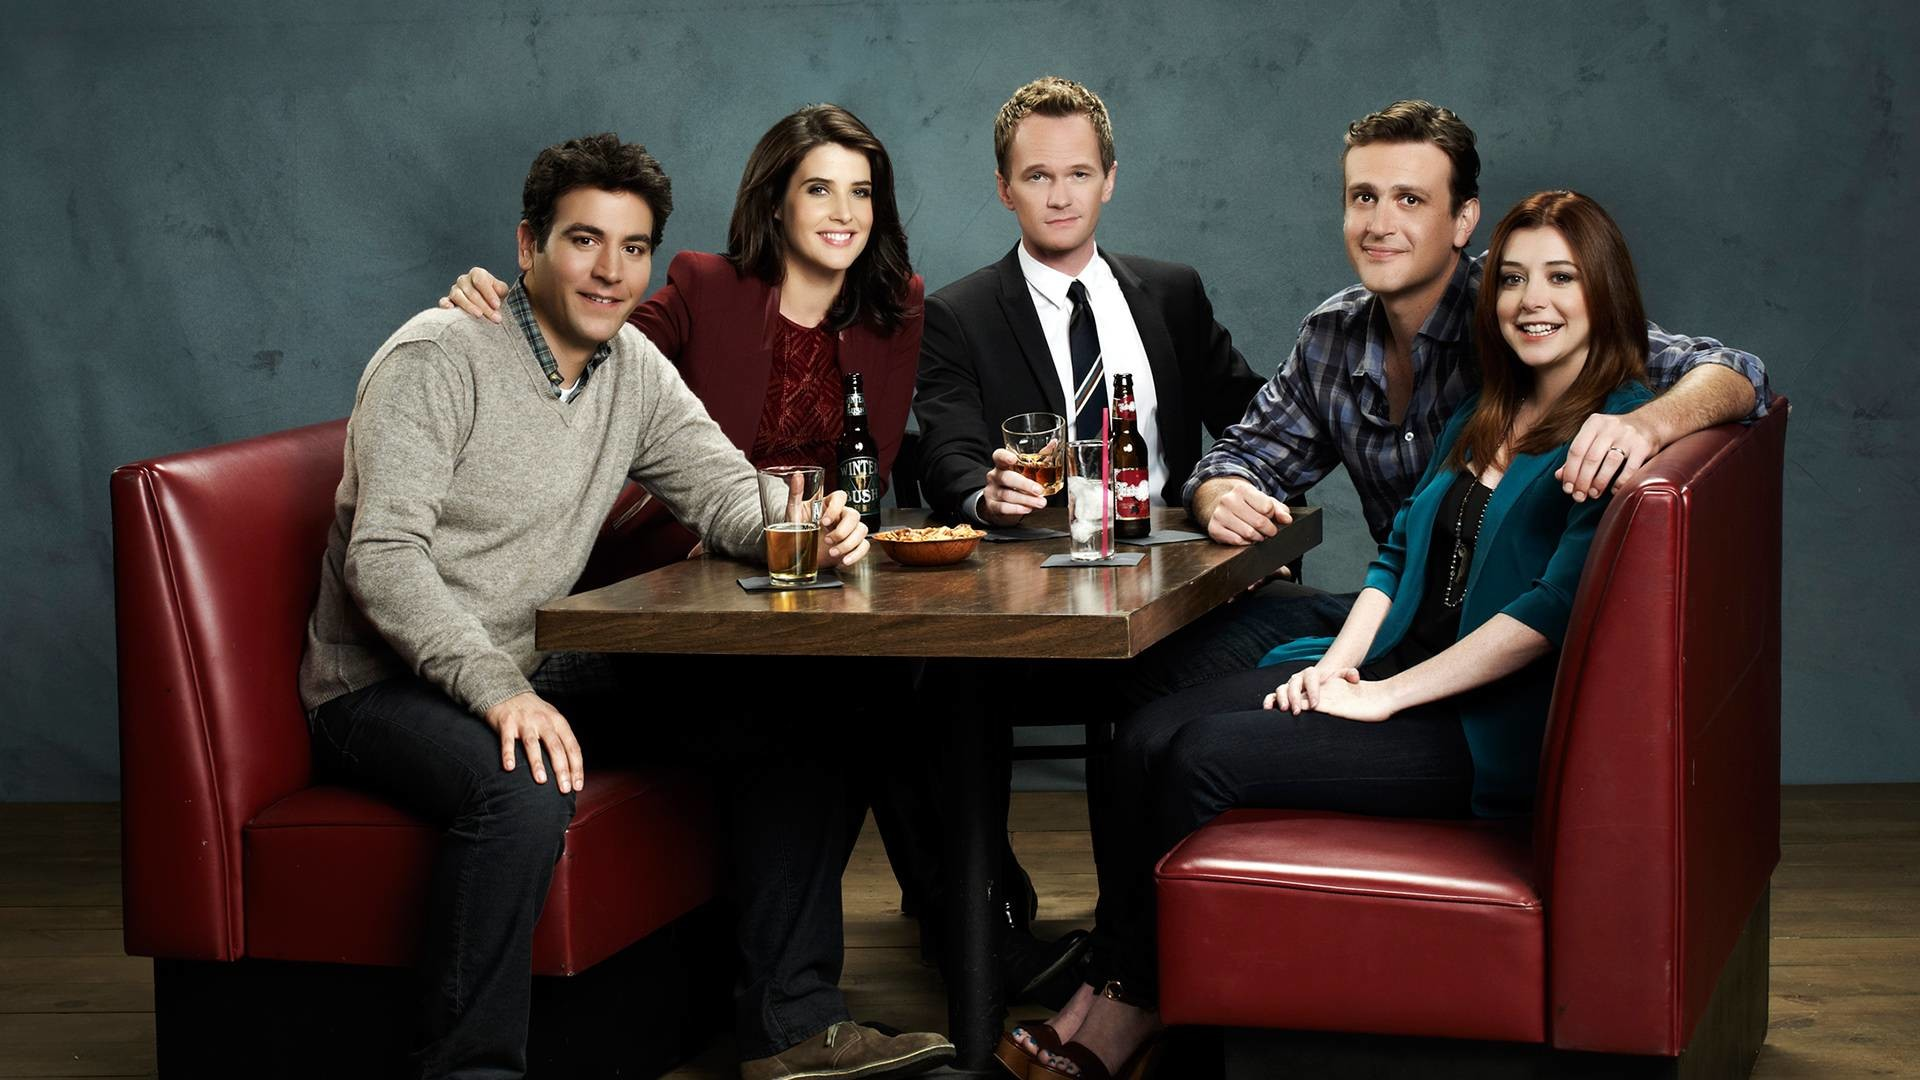 1920x1080 Wallpapers - How I Met Your Mother Streaming